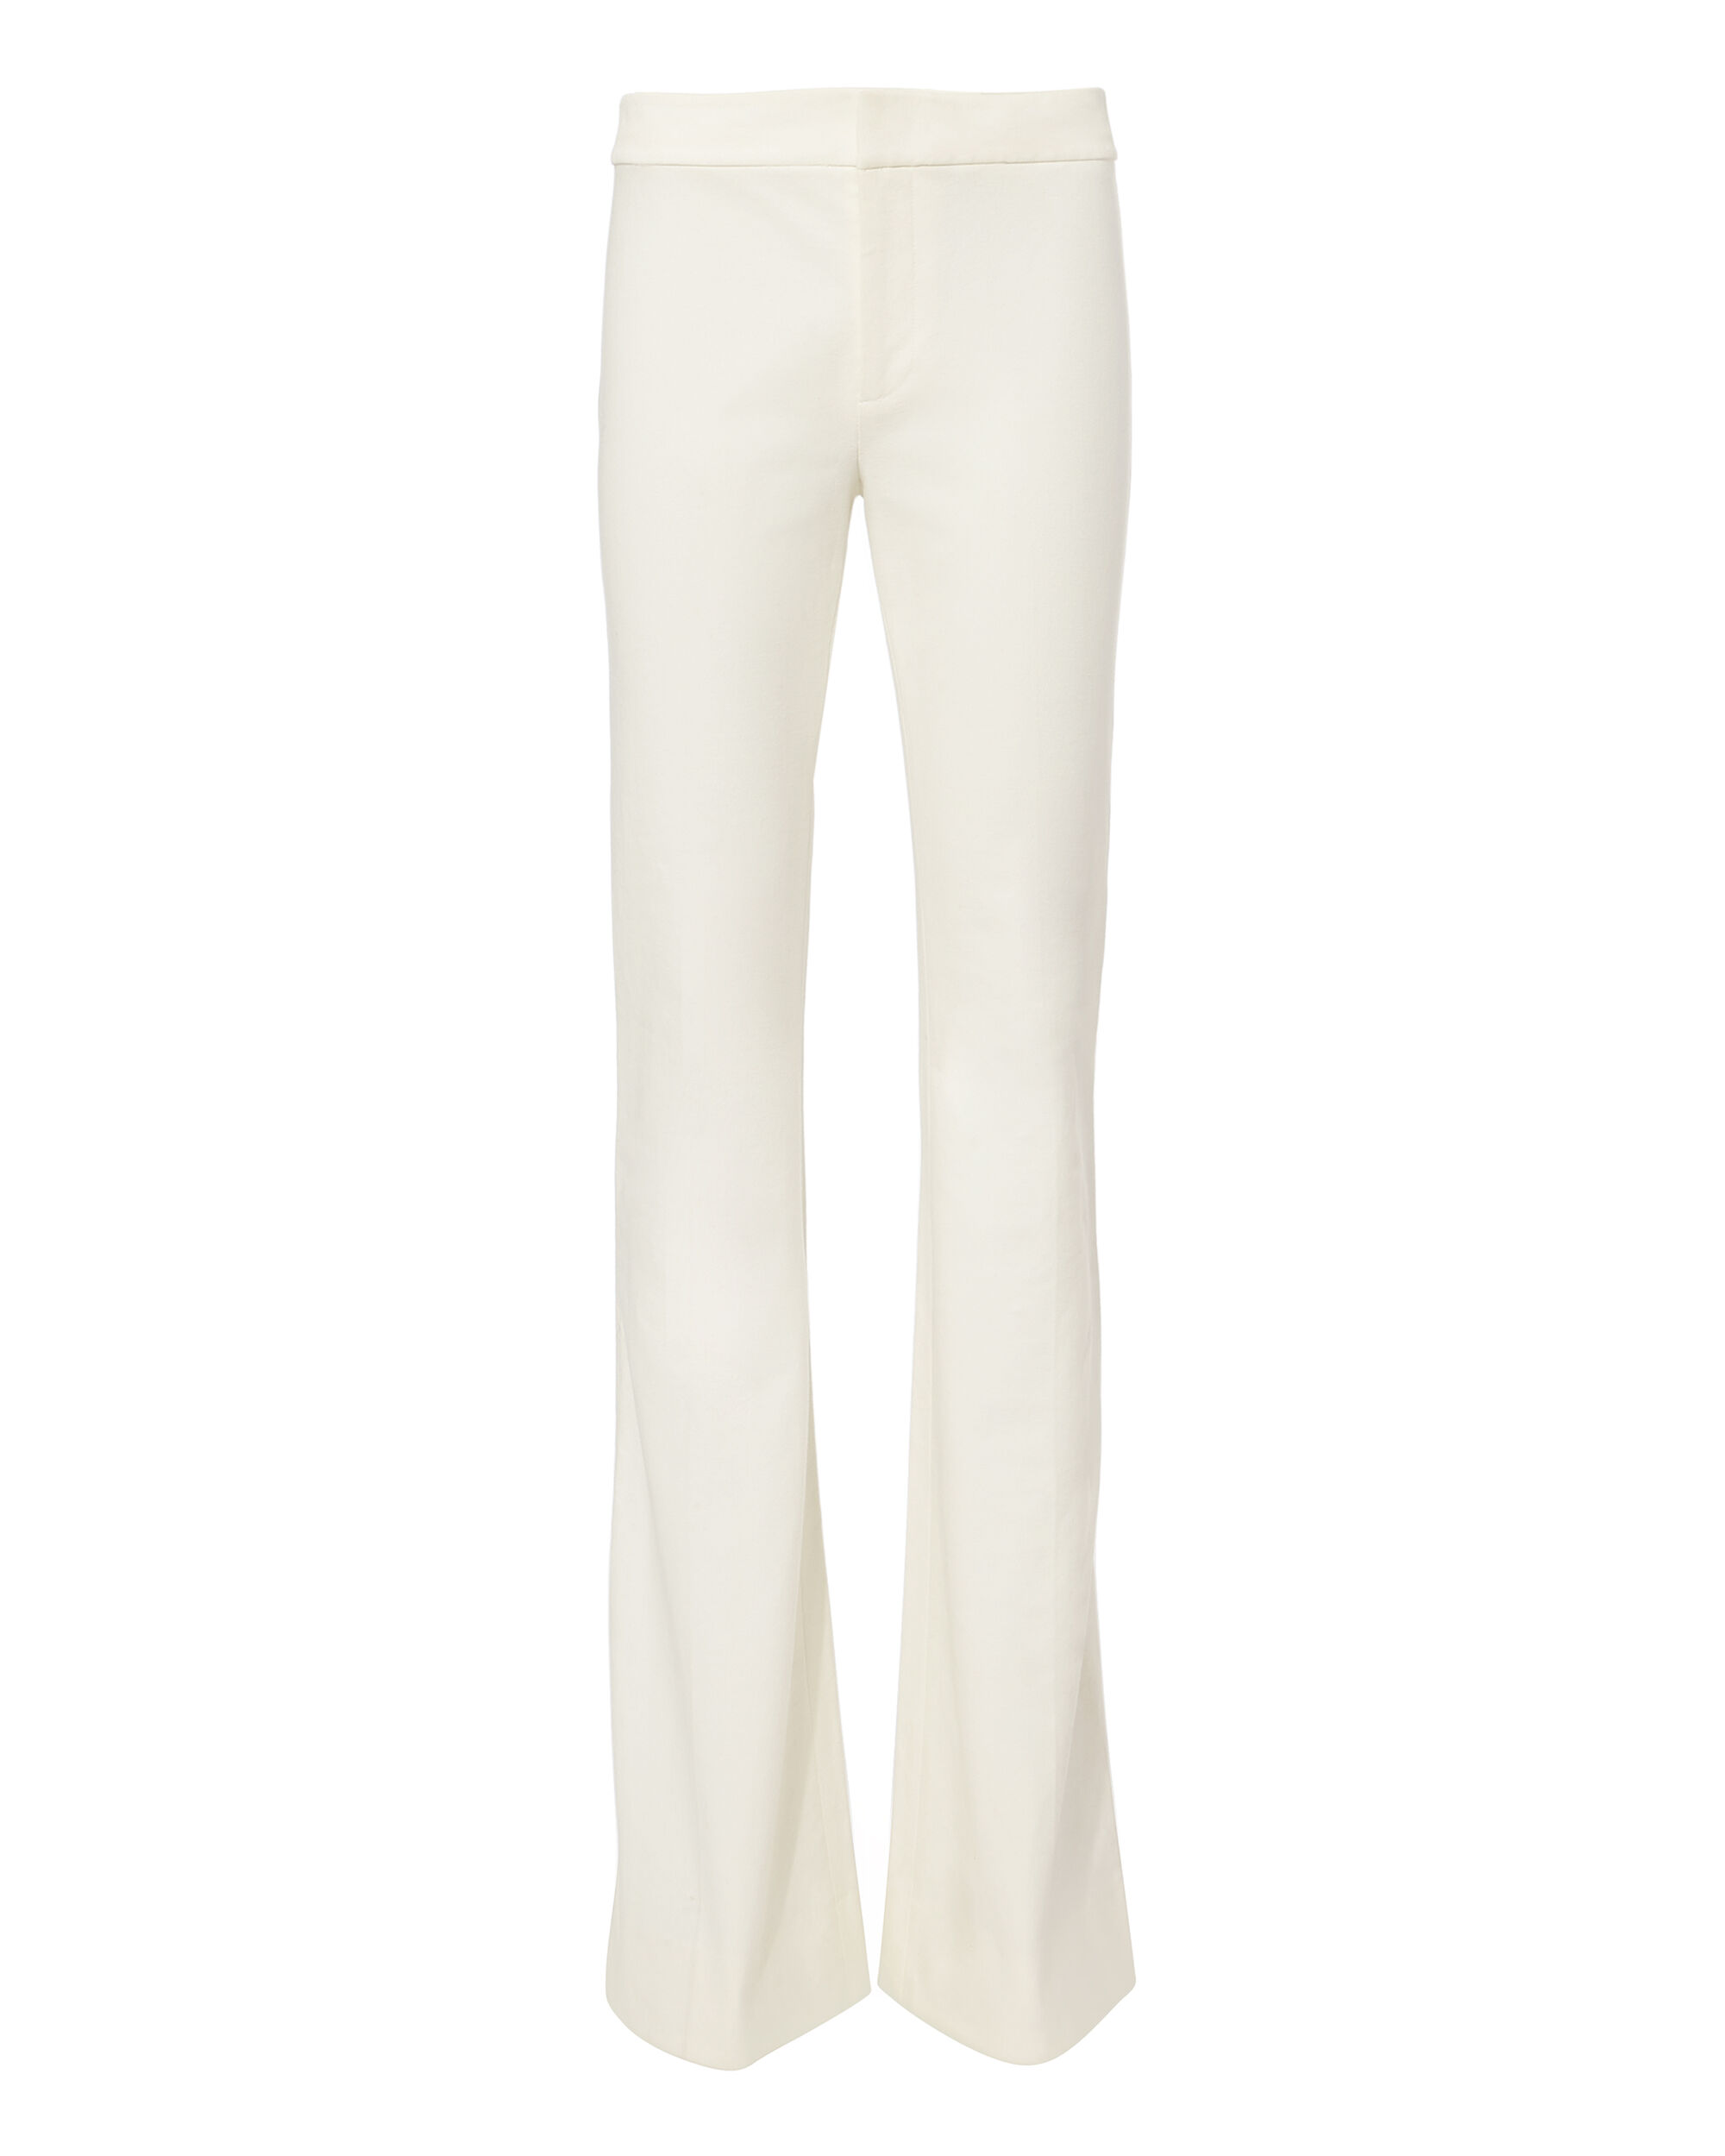 White Flare Trousers, WHITE, hi-res